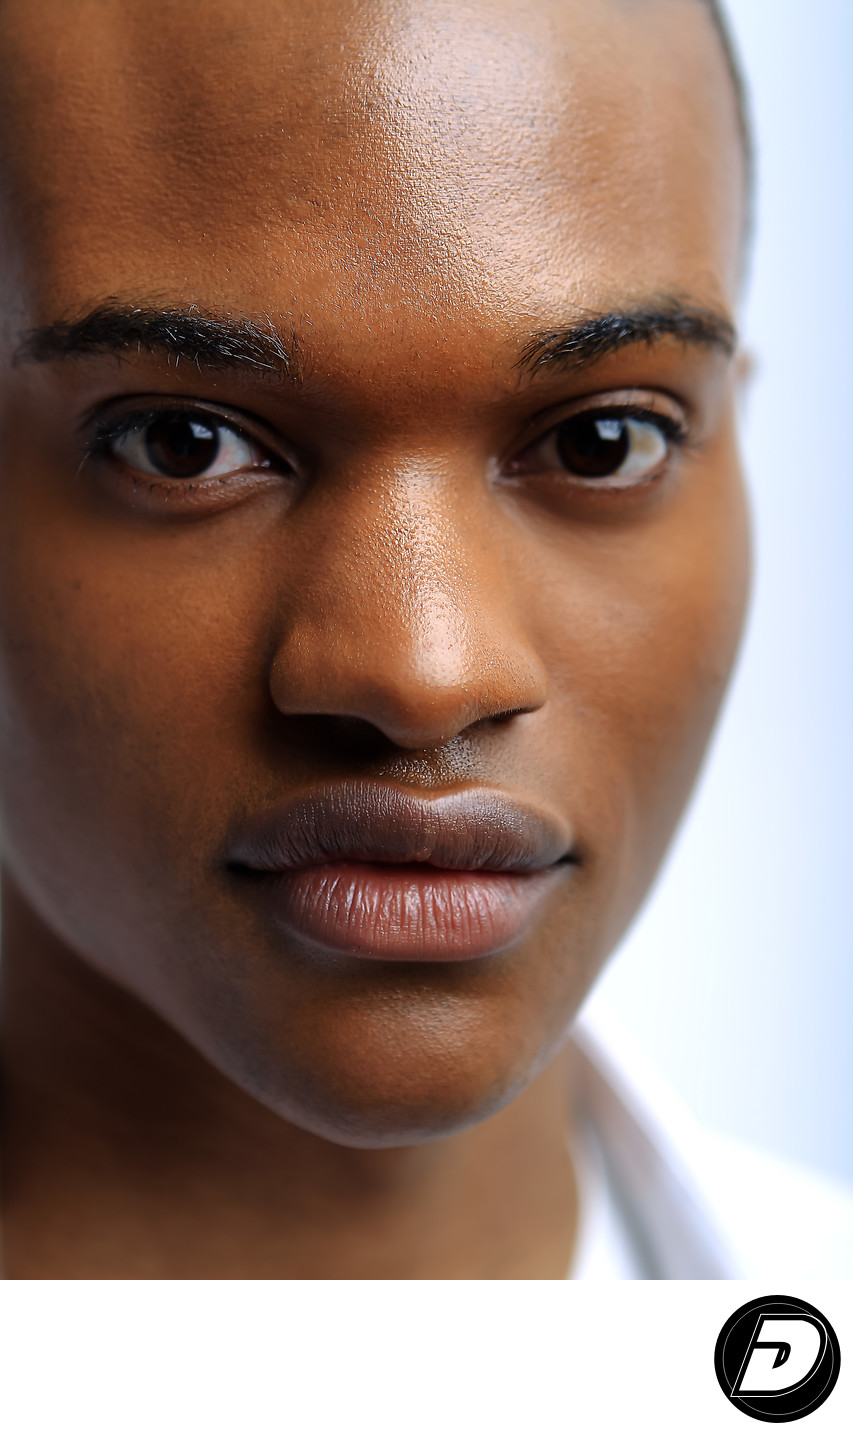 Black Brown Male Face Studio Portrait Photograph